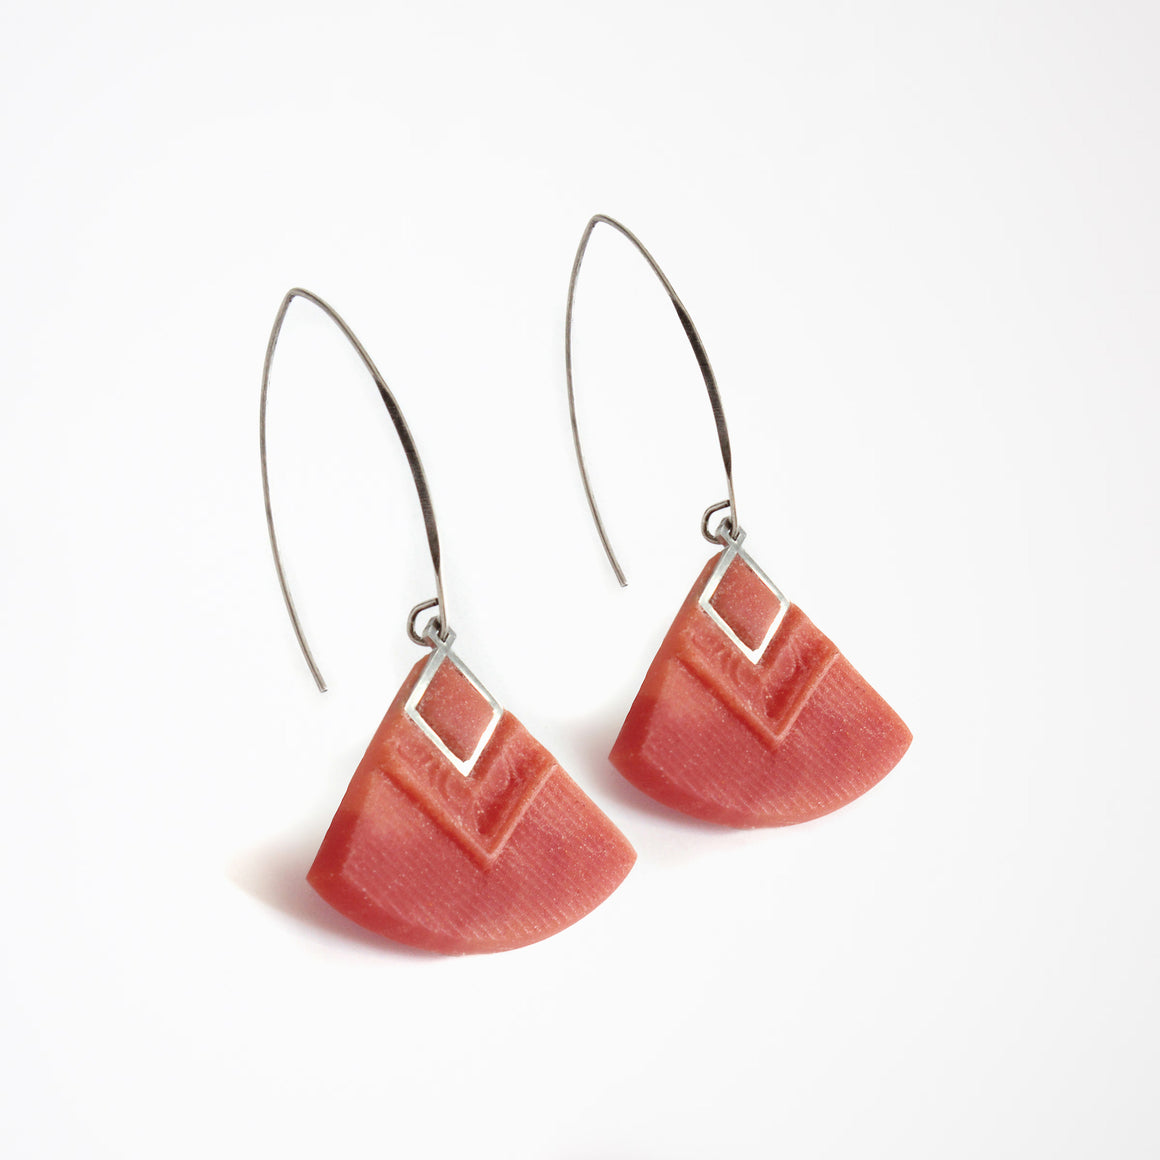 Woman Wearing a Cléopâtre Earrings in Grey - Handmade in Eco-friendly Resin - Sold by Chic & Basta